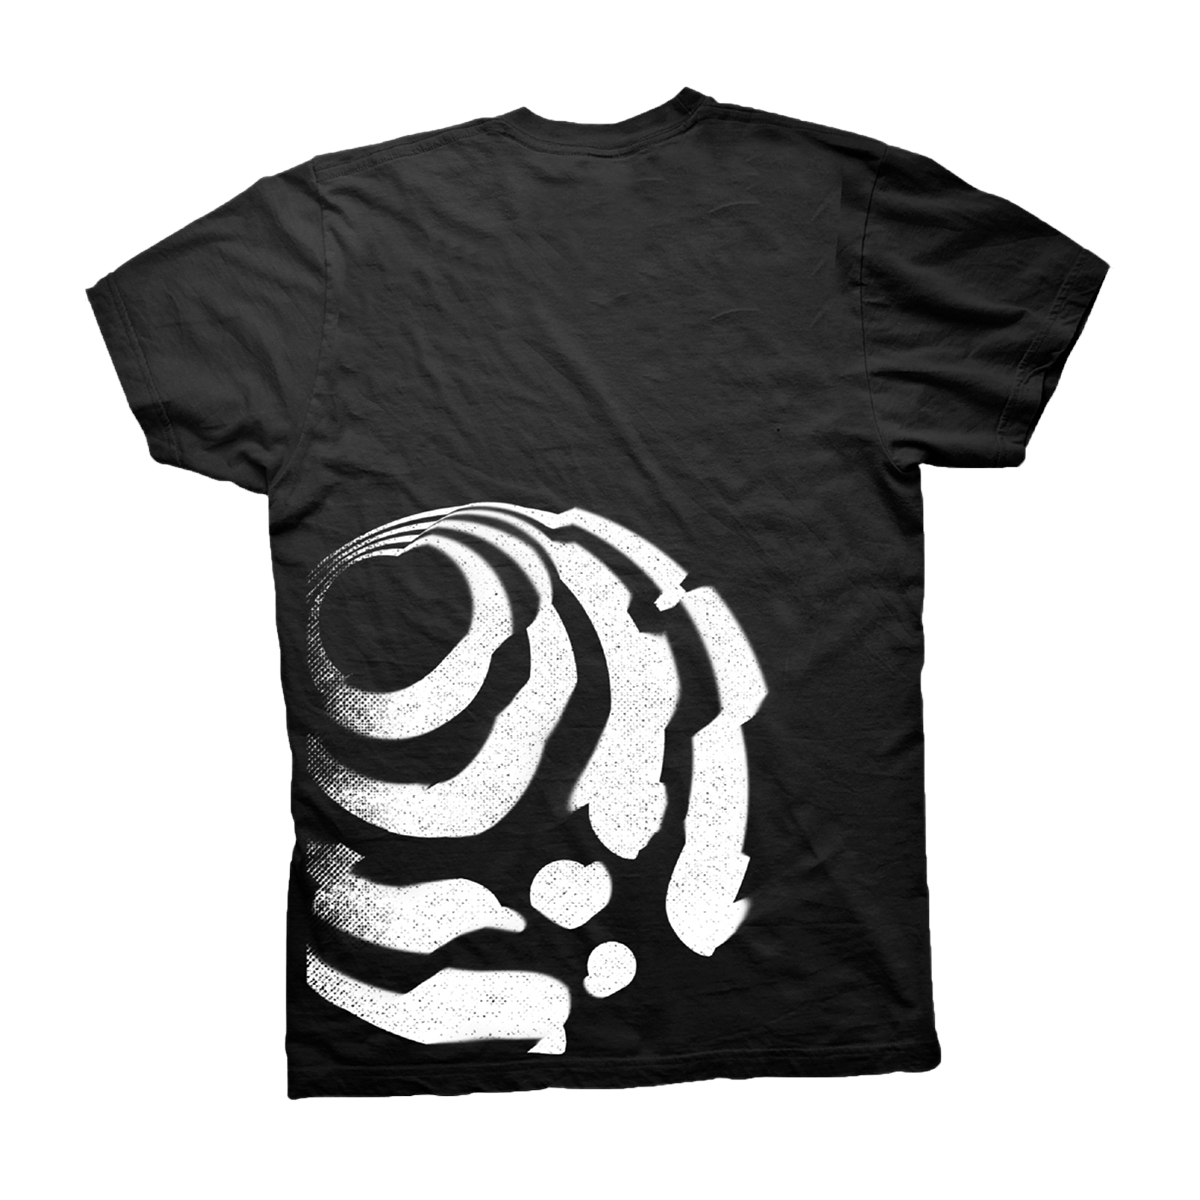 Dark Tunnel Tee